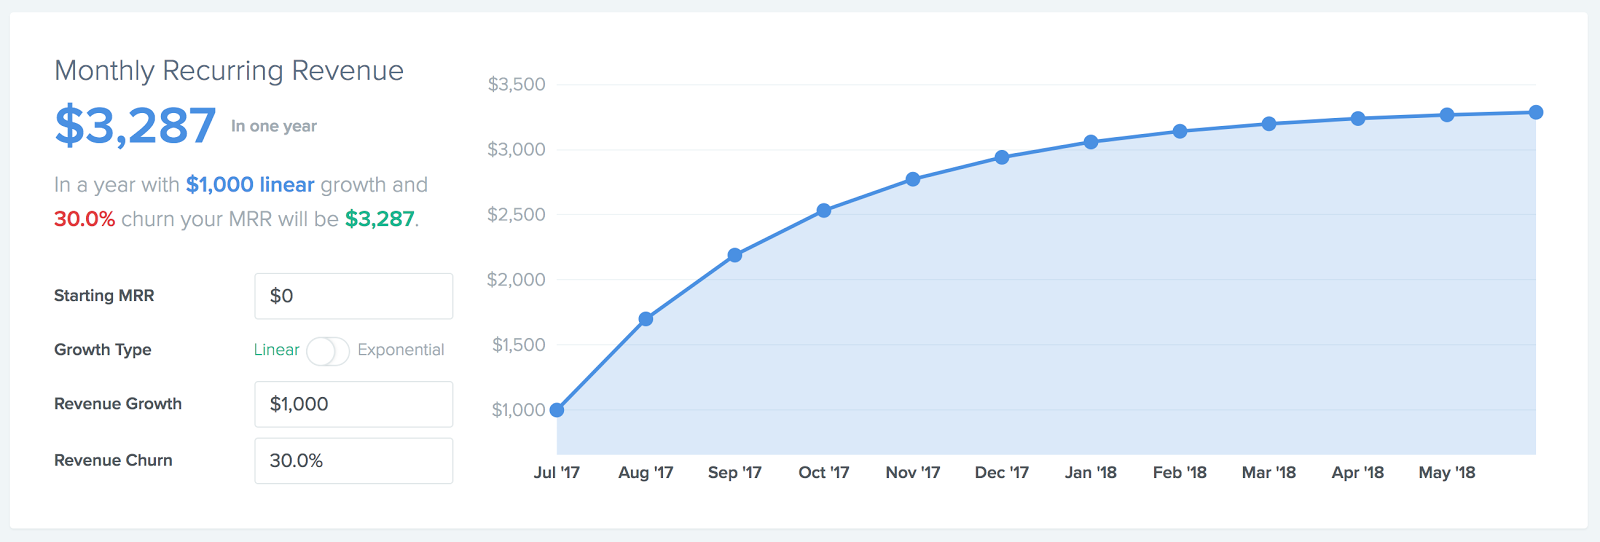 Graph of revenue churn showing that churn isn't as important in the beginning